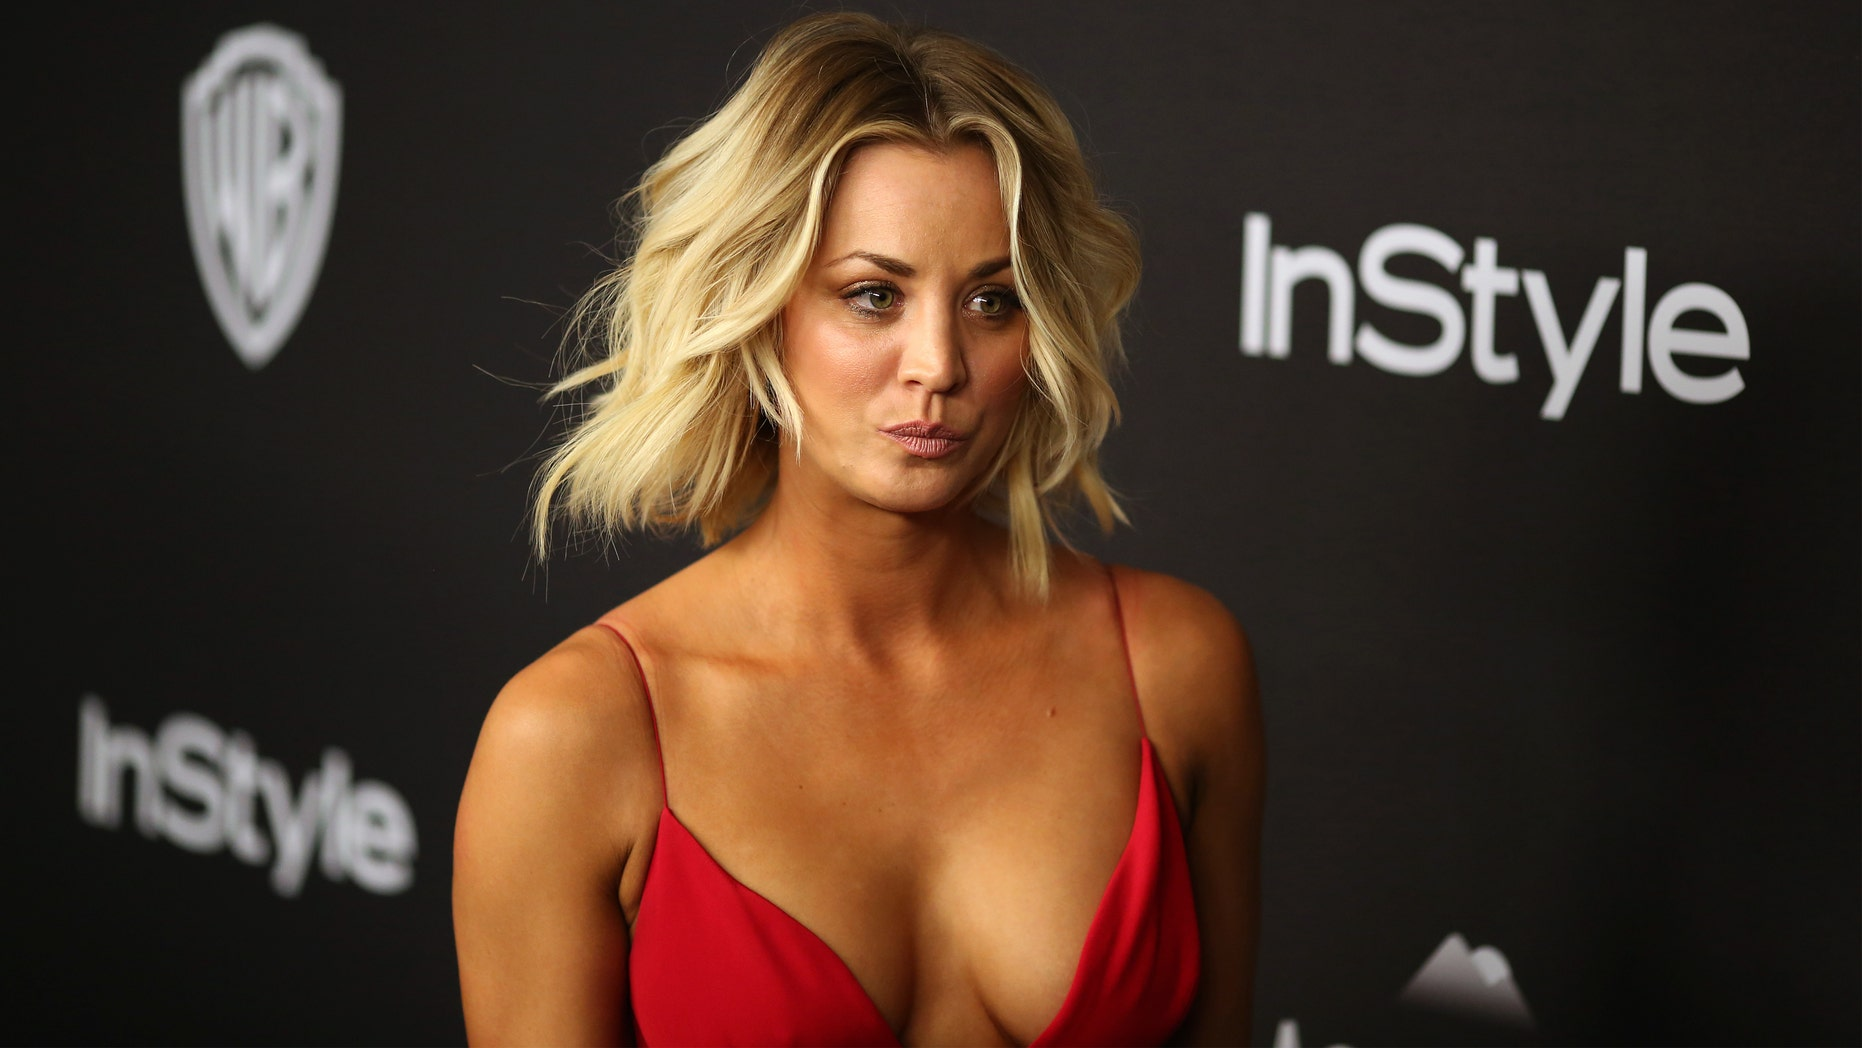 Kaley Cuoco at the 17th Annual Instyle and Warner Bros. Pictures Golden Globes After-Party in 2016.